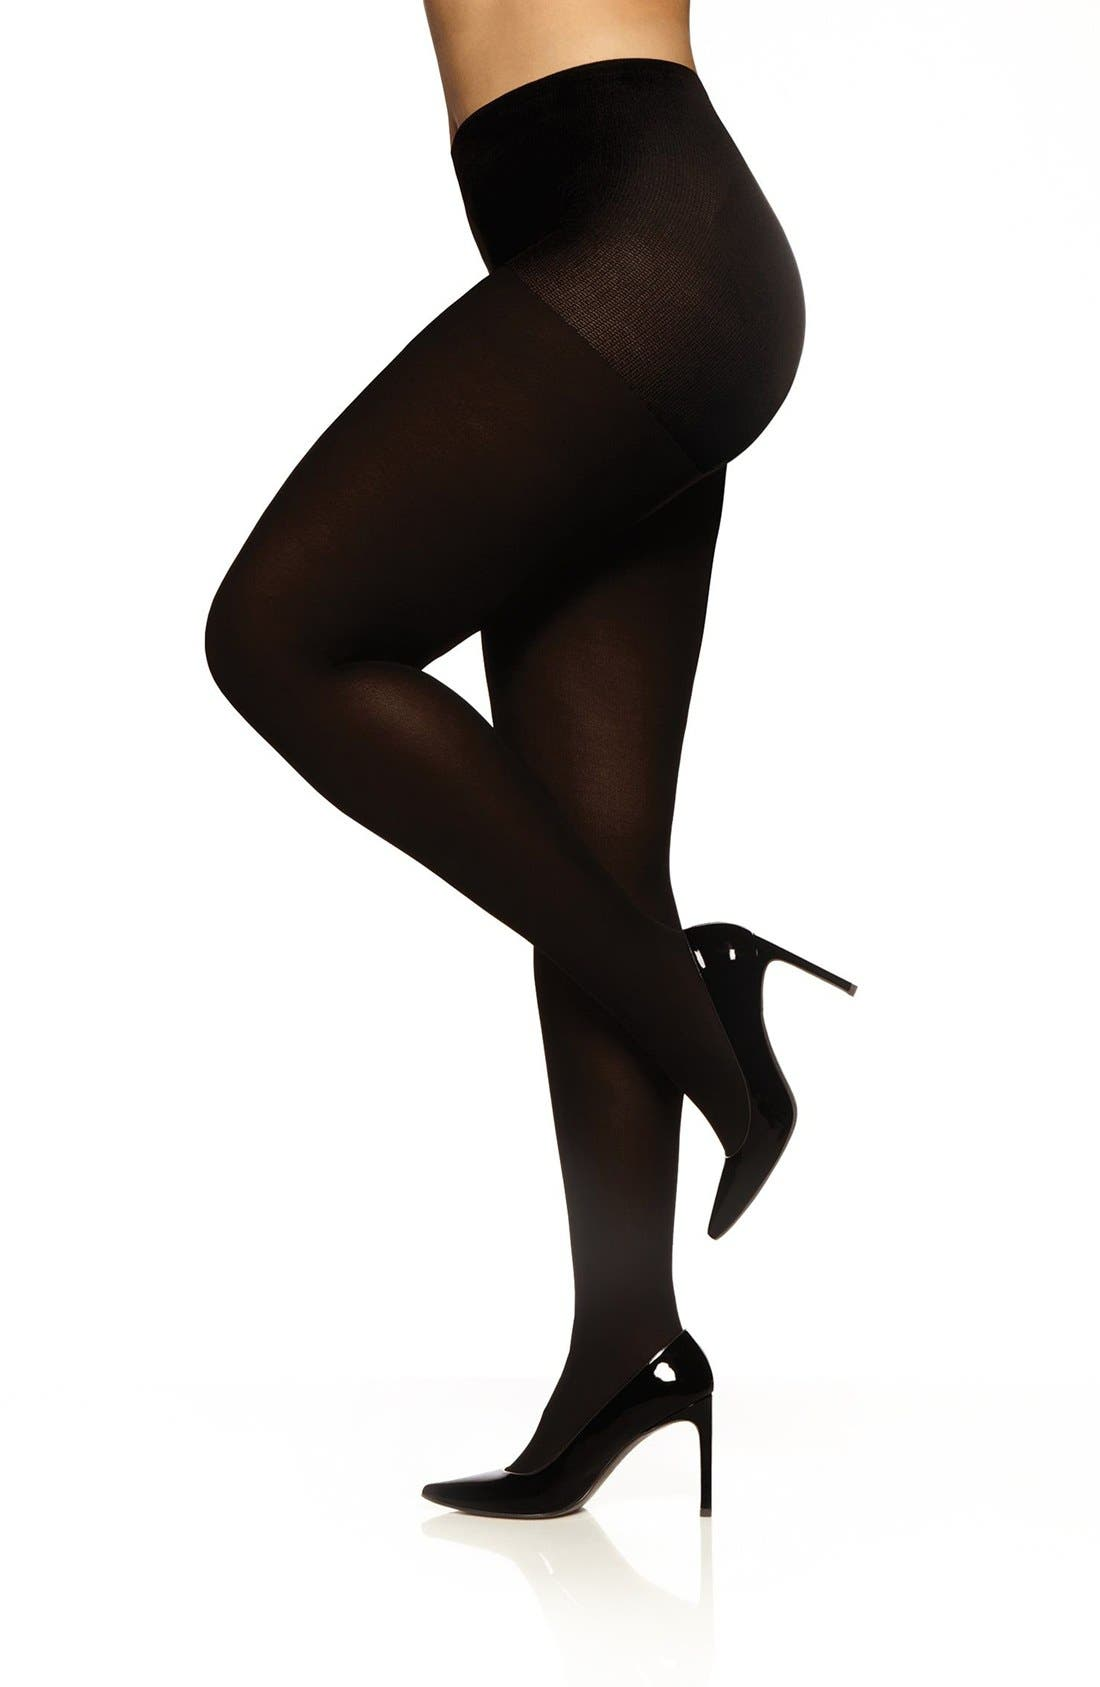 Easy-On 70 Denier Tights,                             Main thumbnail 1, color,                             Black